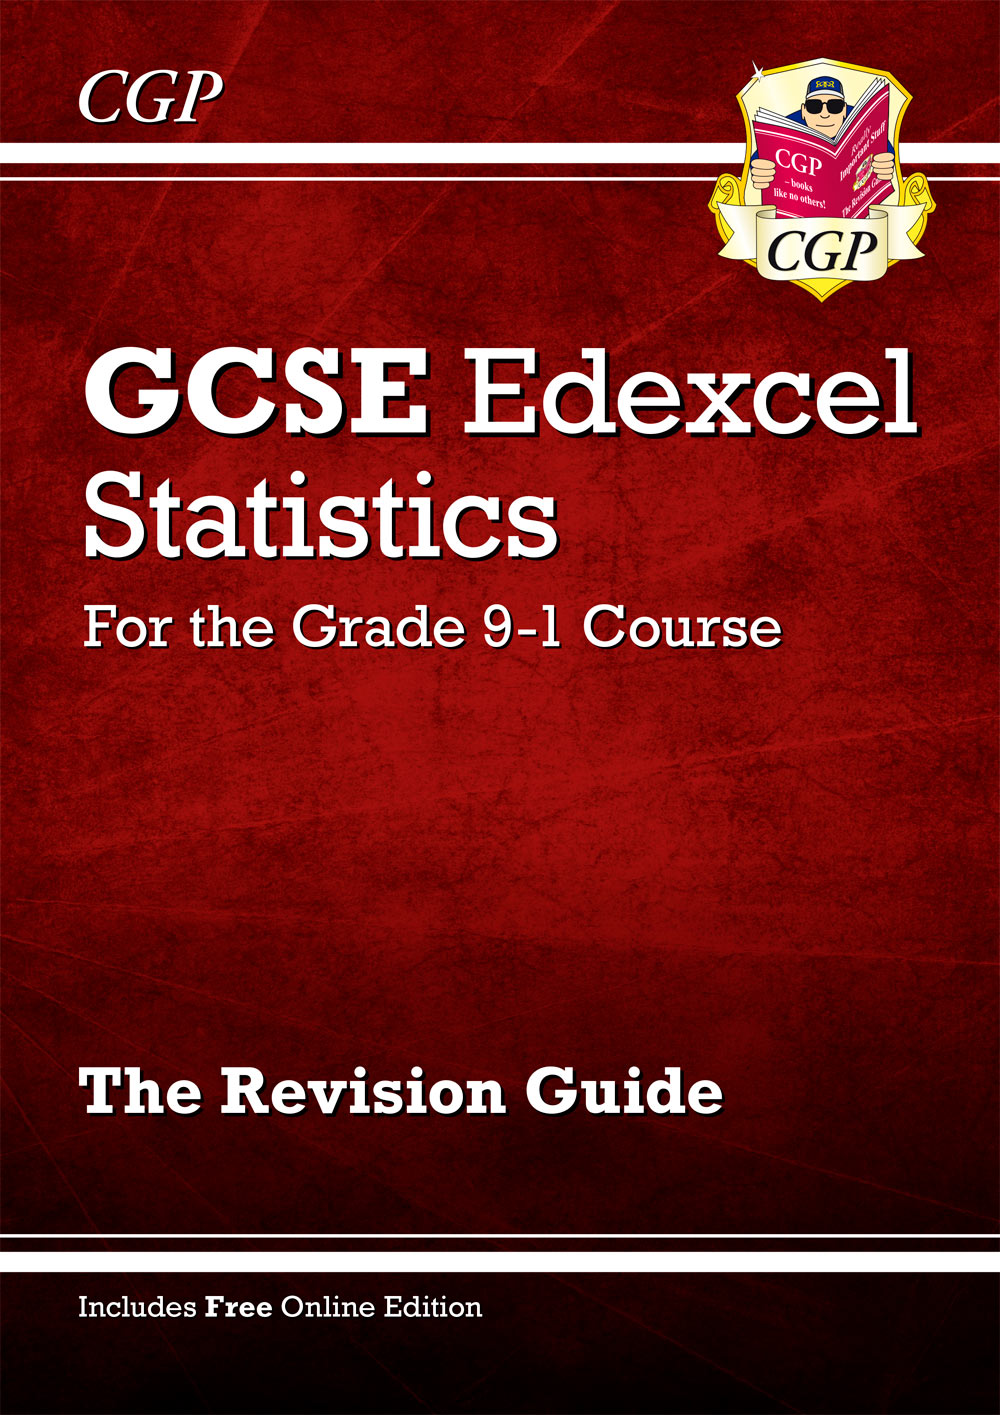 MSXR41 - GCSE Statistics Edexcel Revision Guide - for the Grade 9-1 Course (with Online Edition)